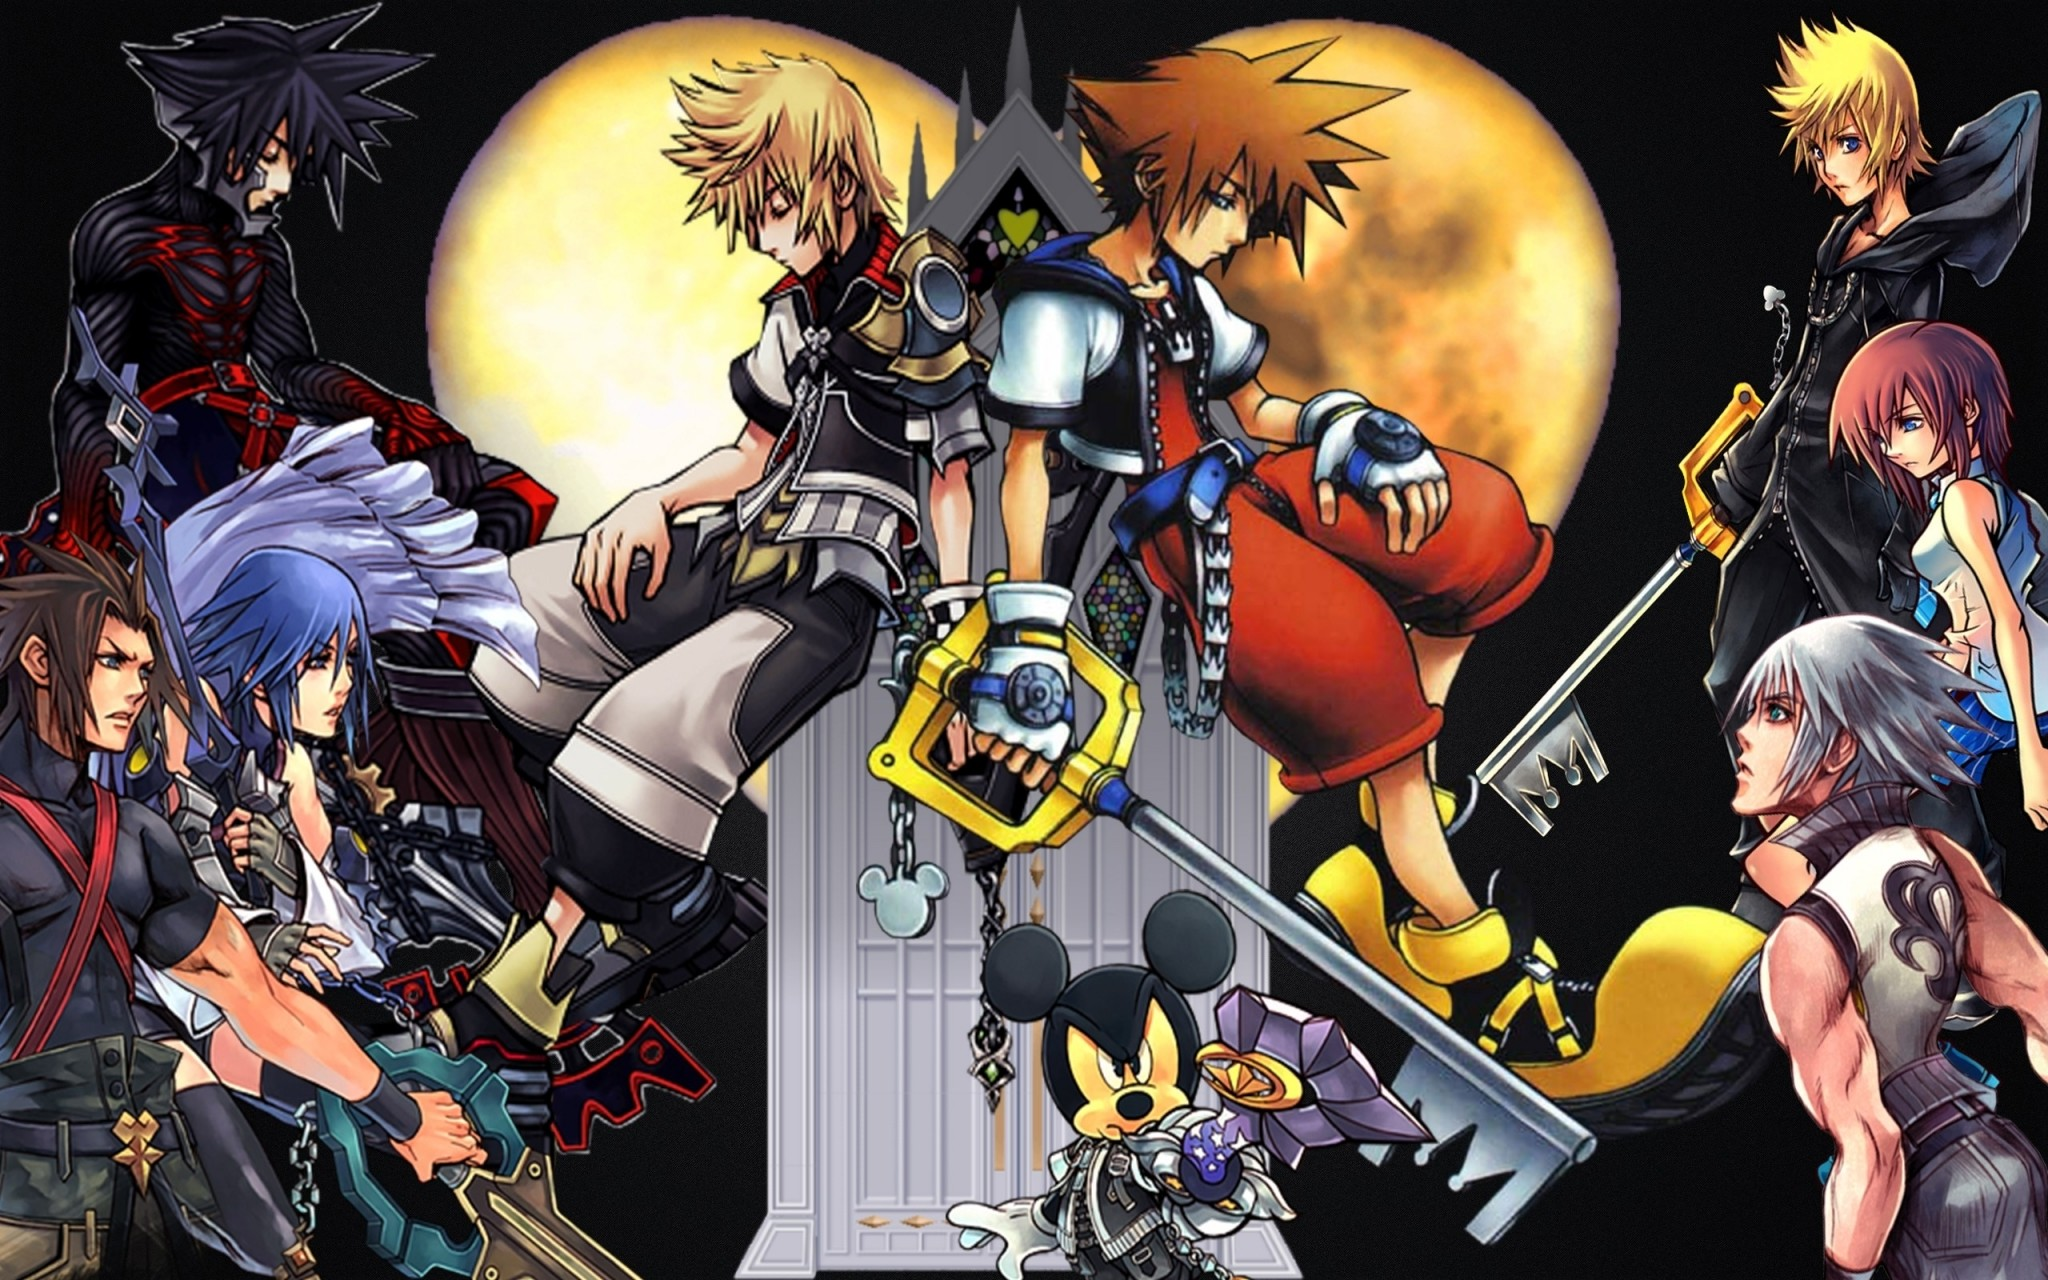 Res: 2048x1280, Kingdom Hearts Picture For Desktop Wallpaper Kingdom Hearts Wallpaper  Desktop Backgrounds